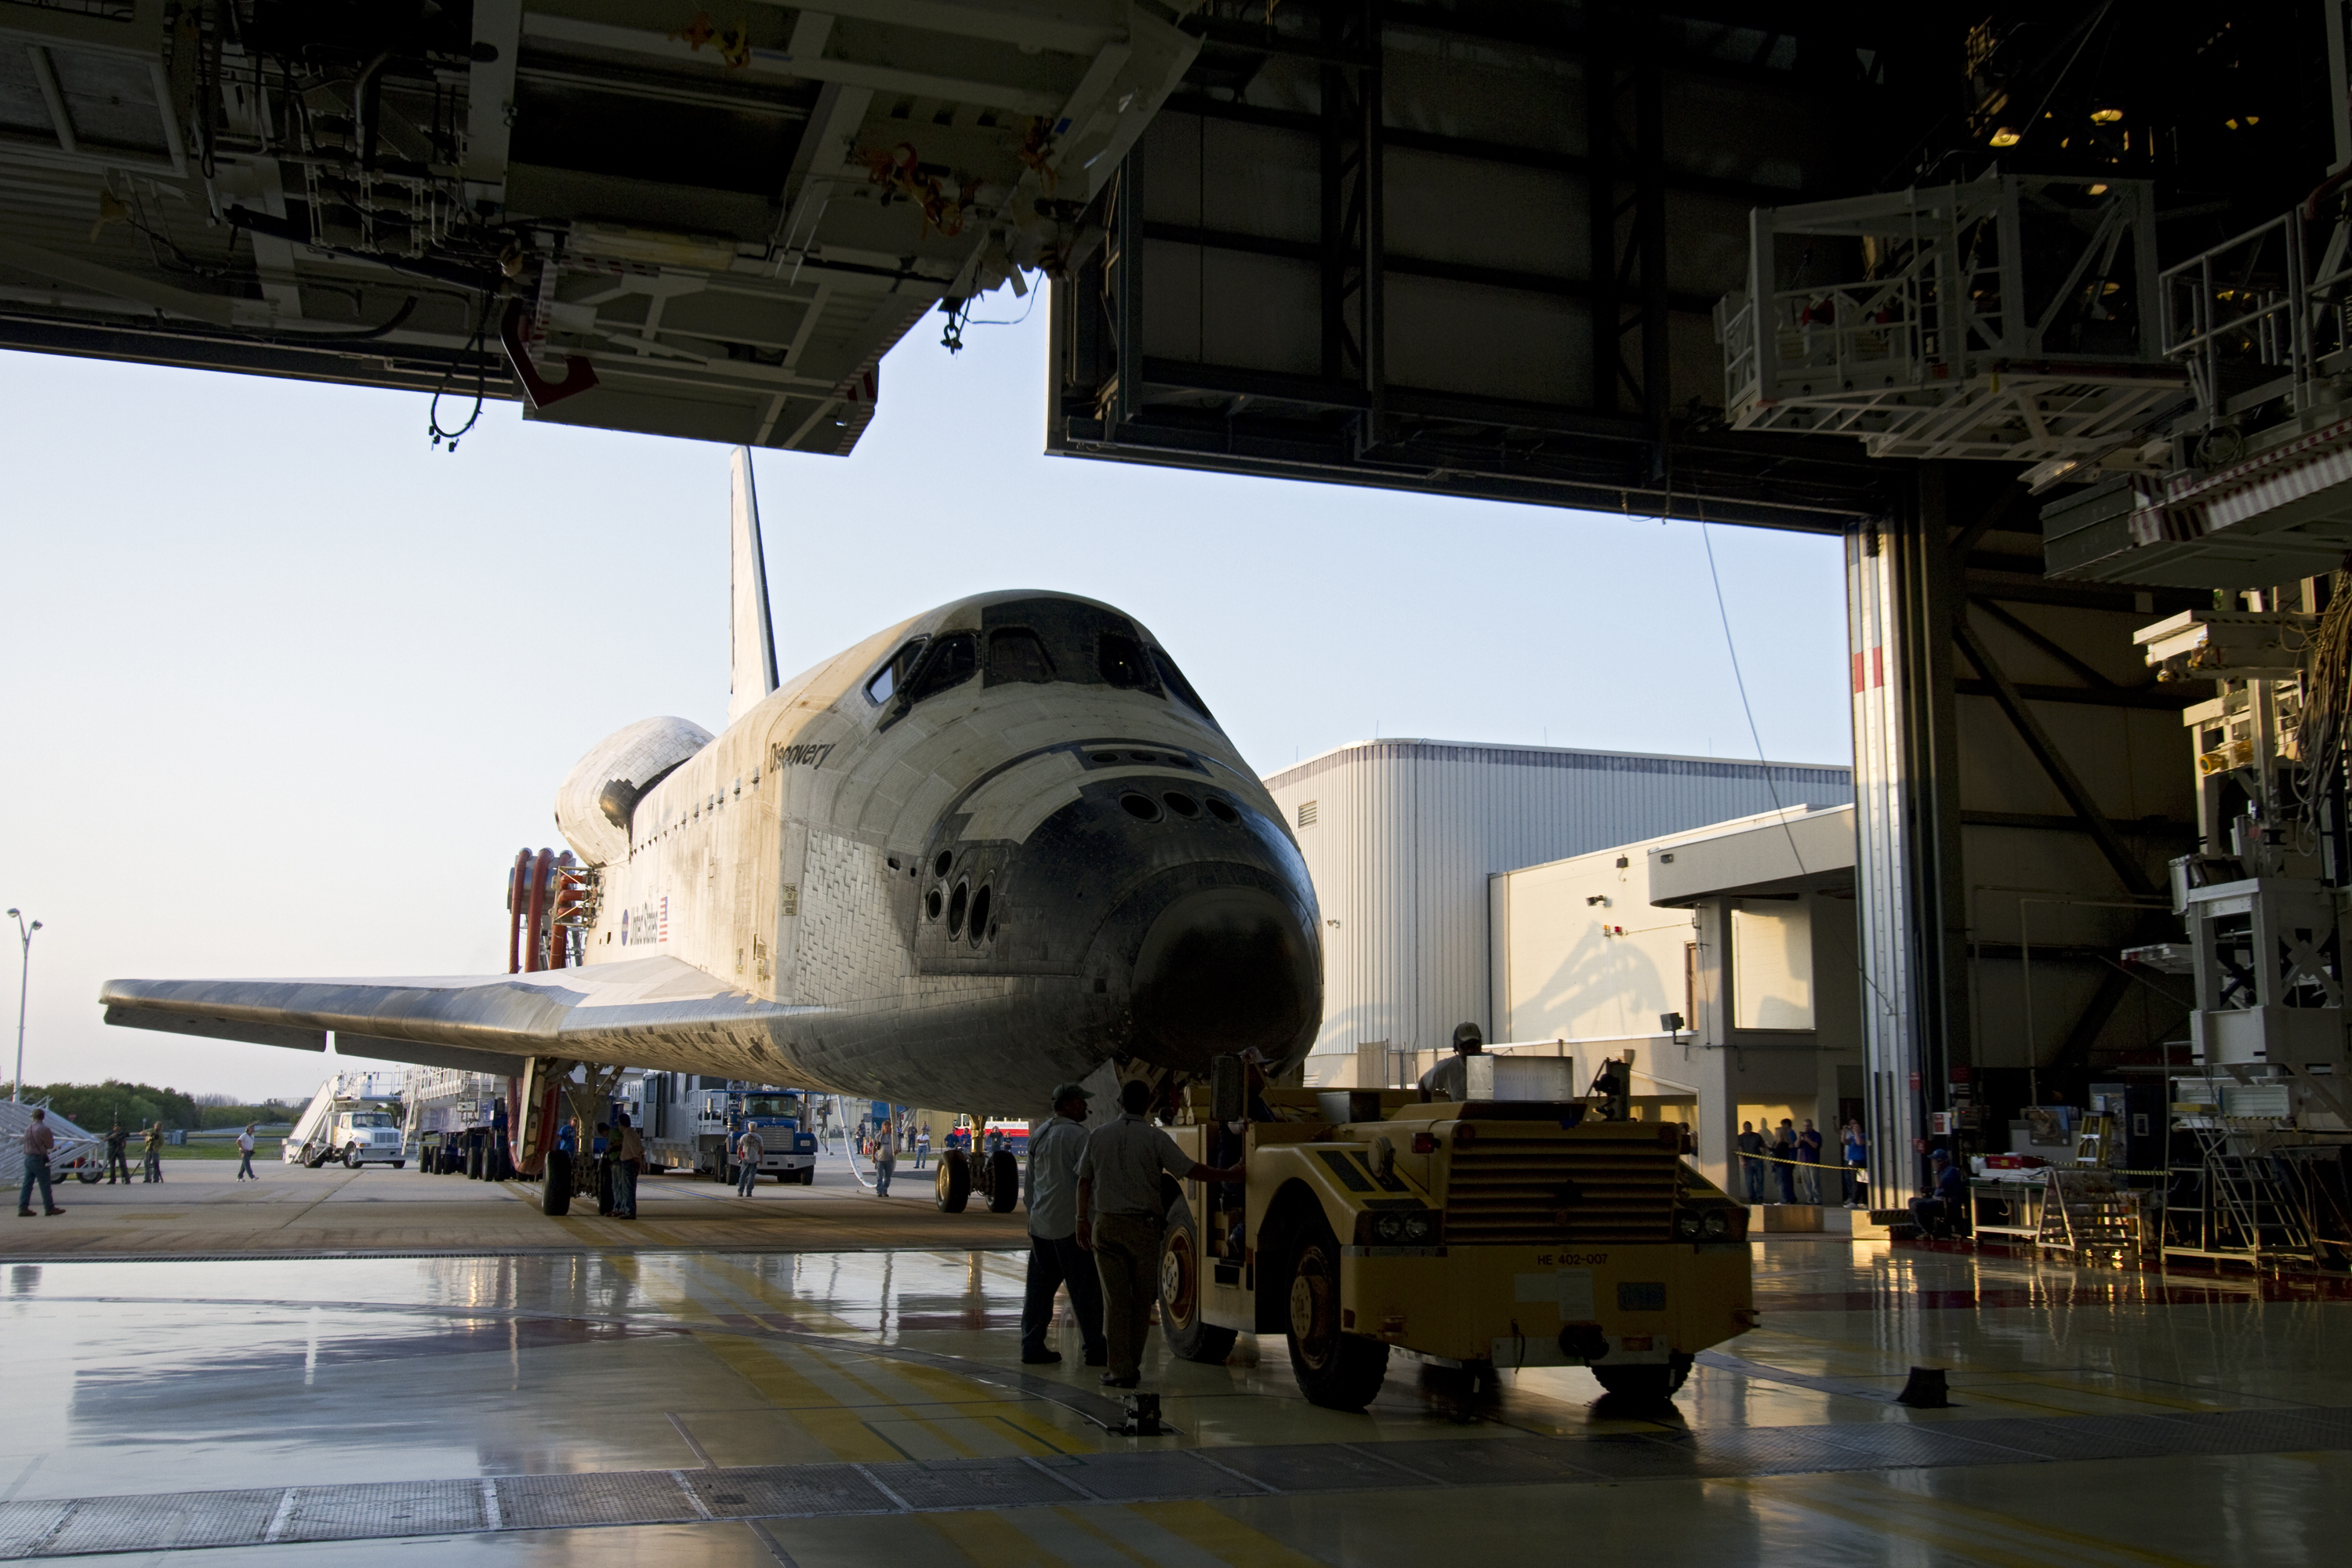 text space shuttle discovery missions - photo #7